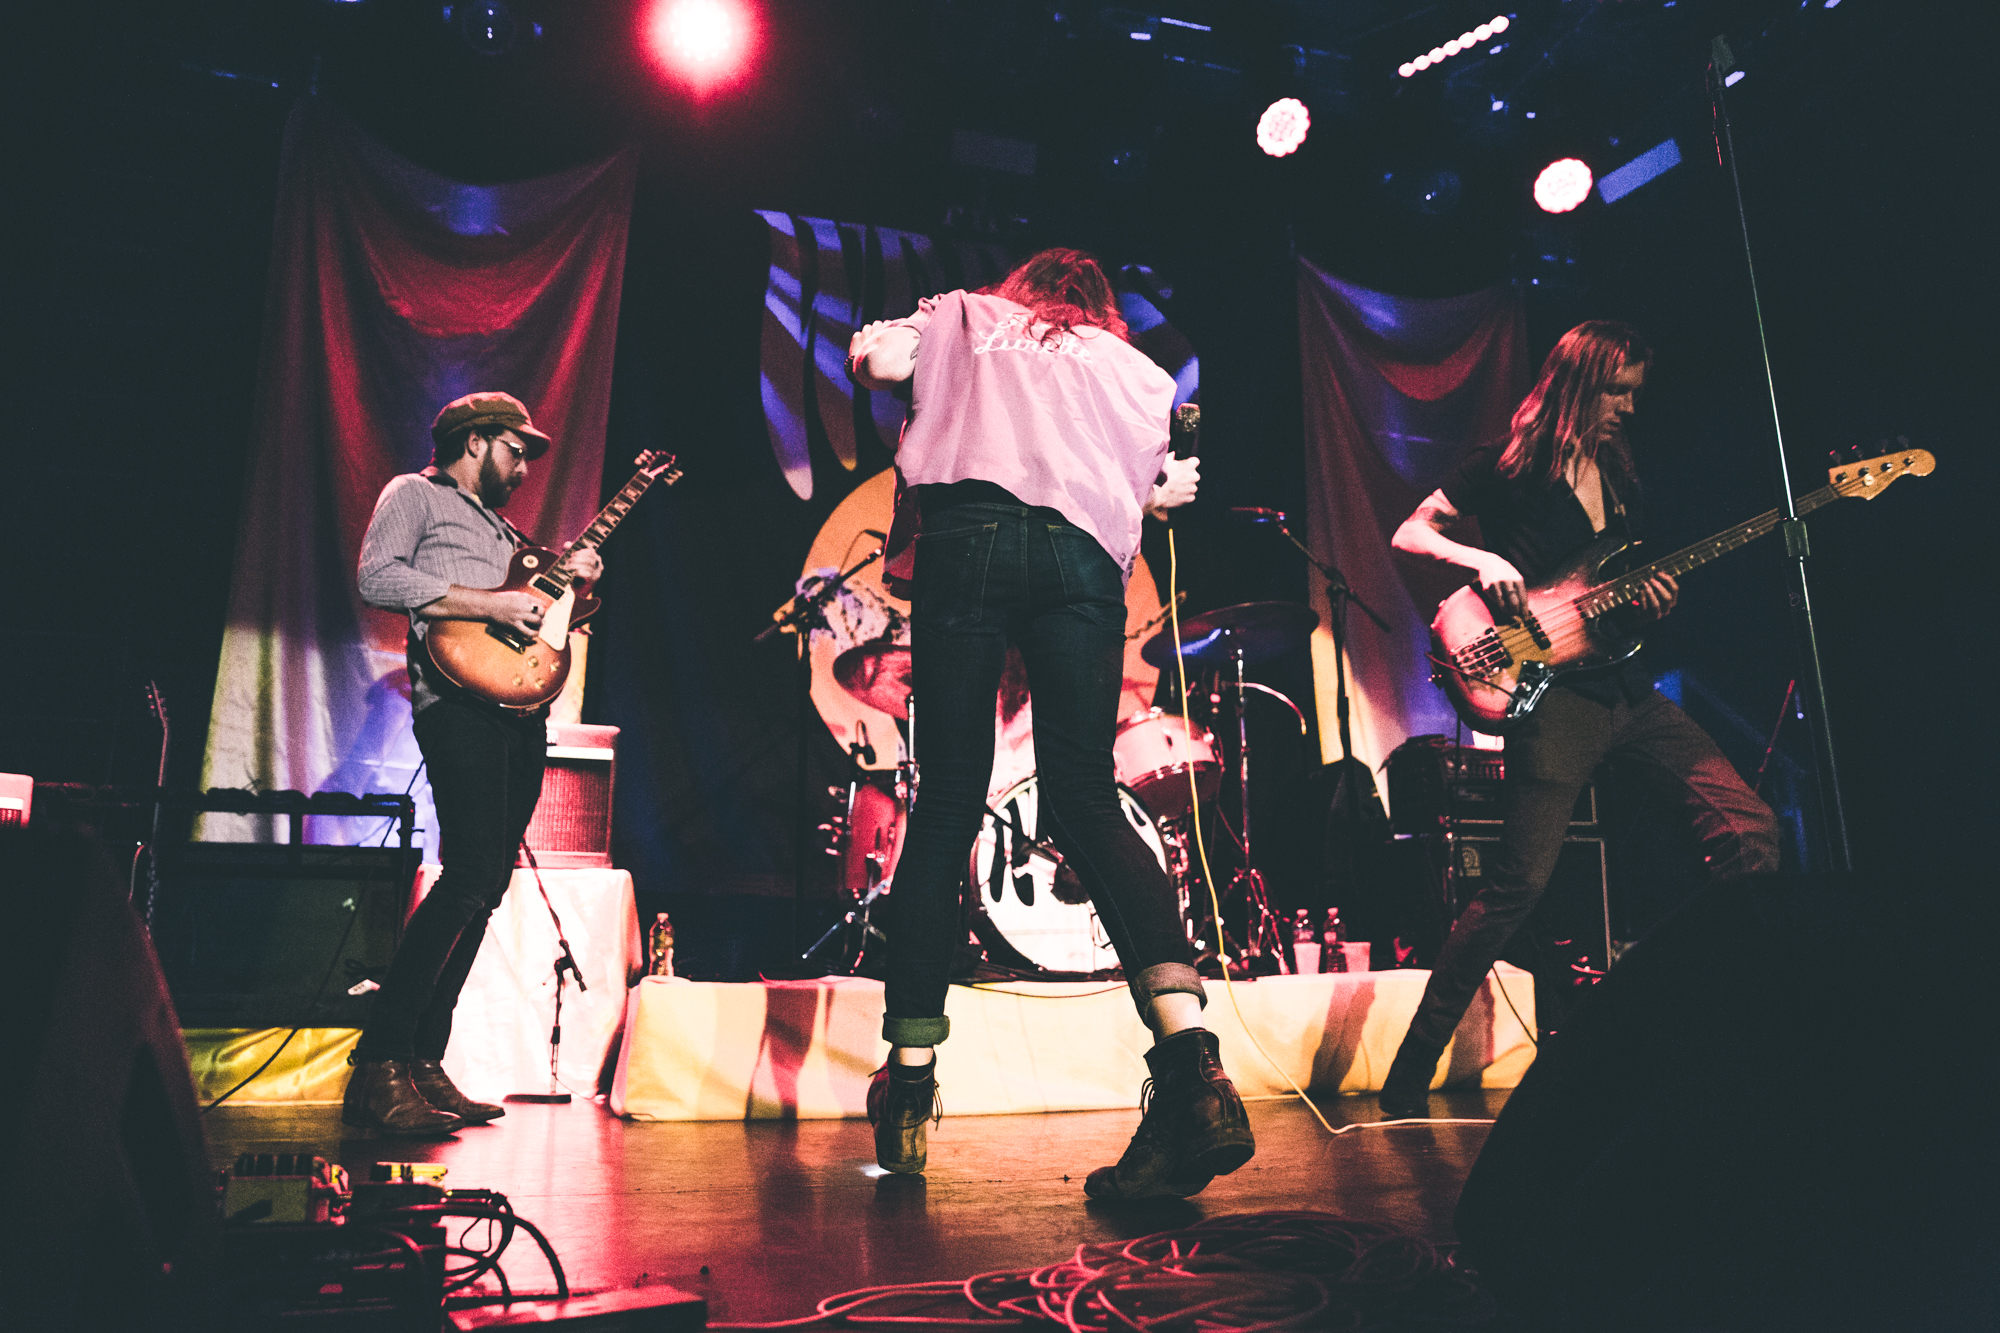 The Weeks - The Bowery Ballroom in New York, NYMay 2nd, 2018PHOTOS BY ALEX LYON